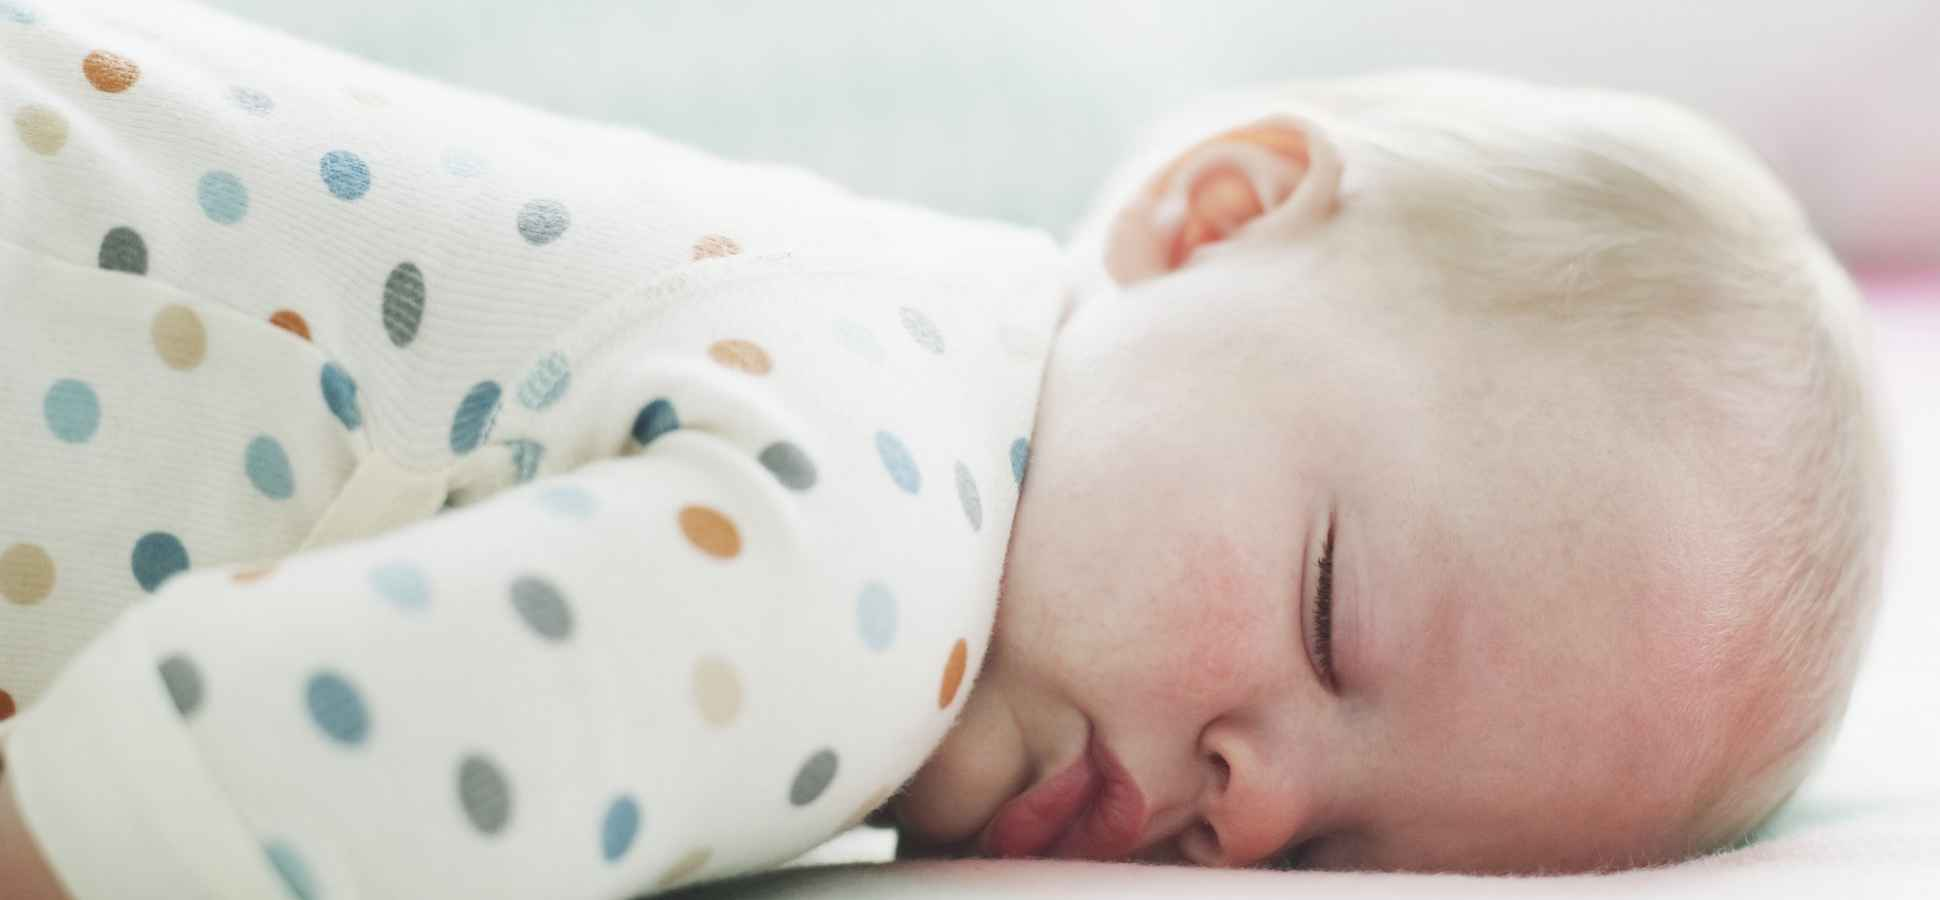 a new crib mattress could reduce the risk of sids | inc